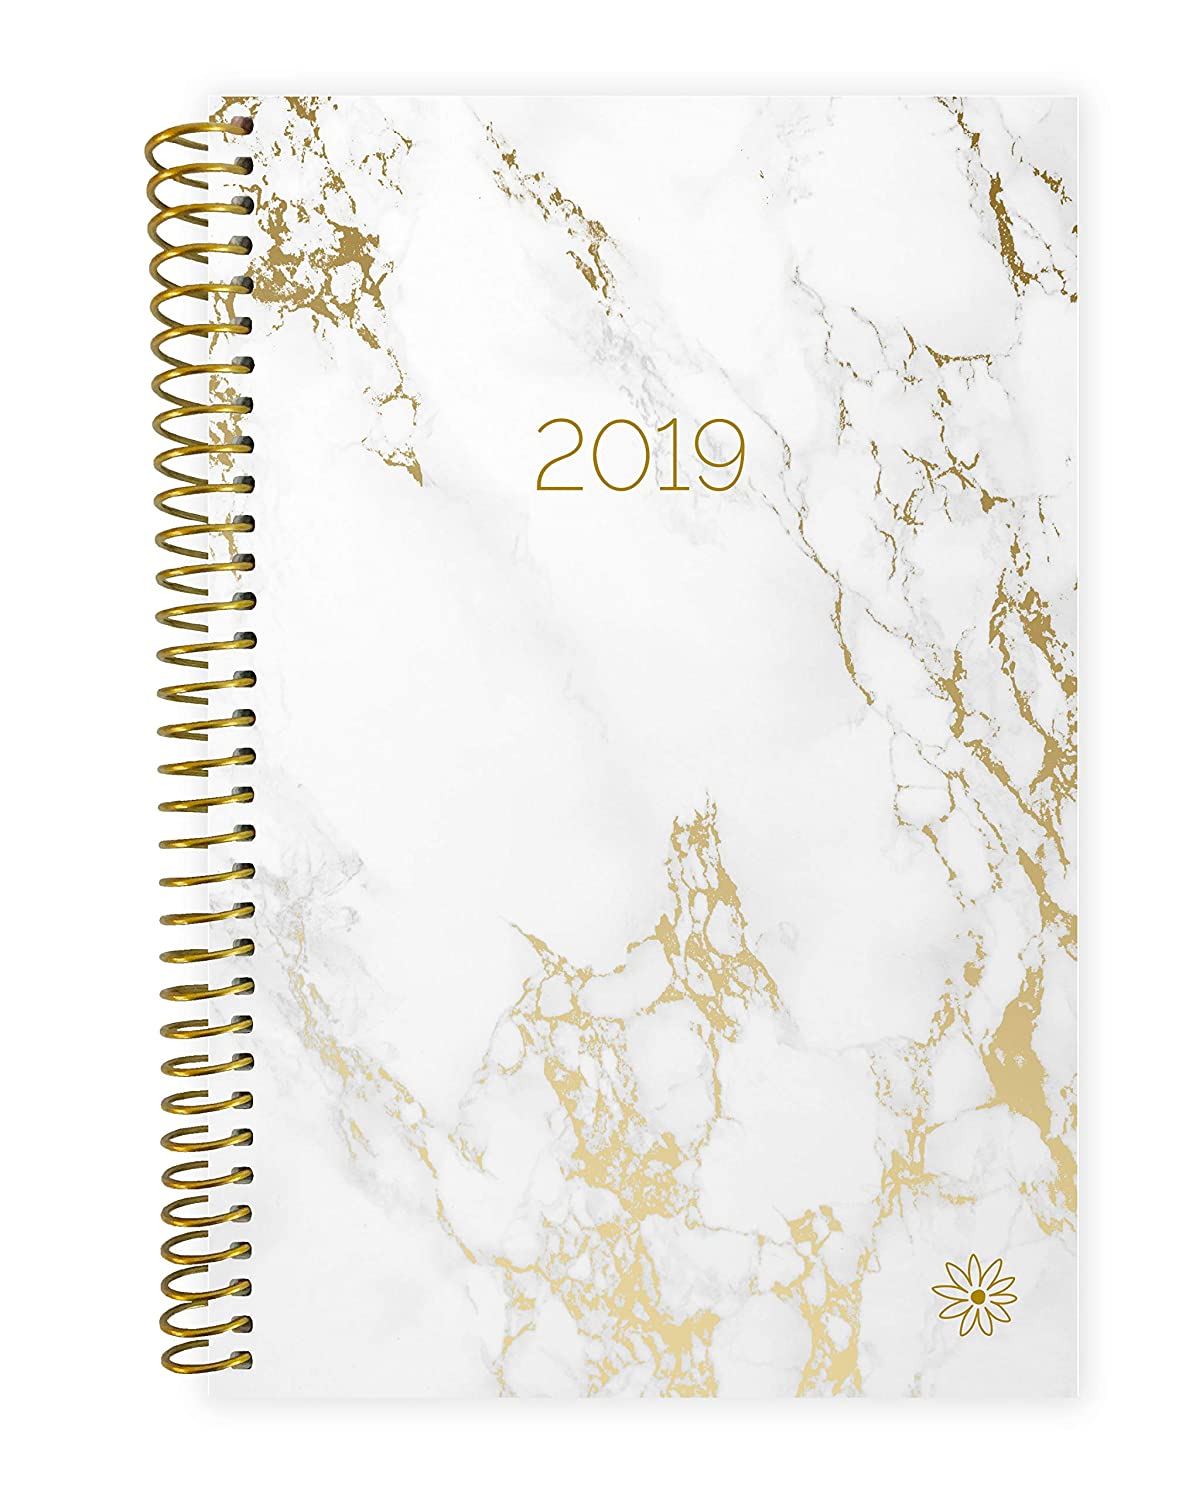 picture relating to Day Organizer titled bloom everyday planners 2019 Calendar Yr Working day Planner - Pion/Objective Organizer - Regular monthly and Weekly Dated Schedule E-book - (January 2019 - December 2019) -